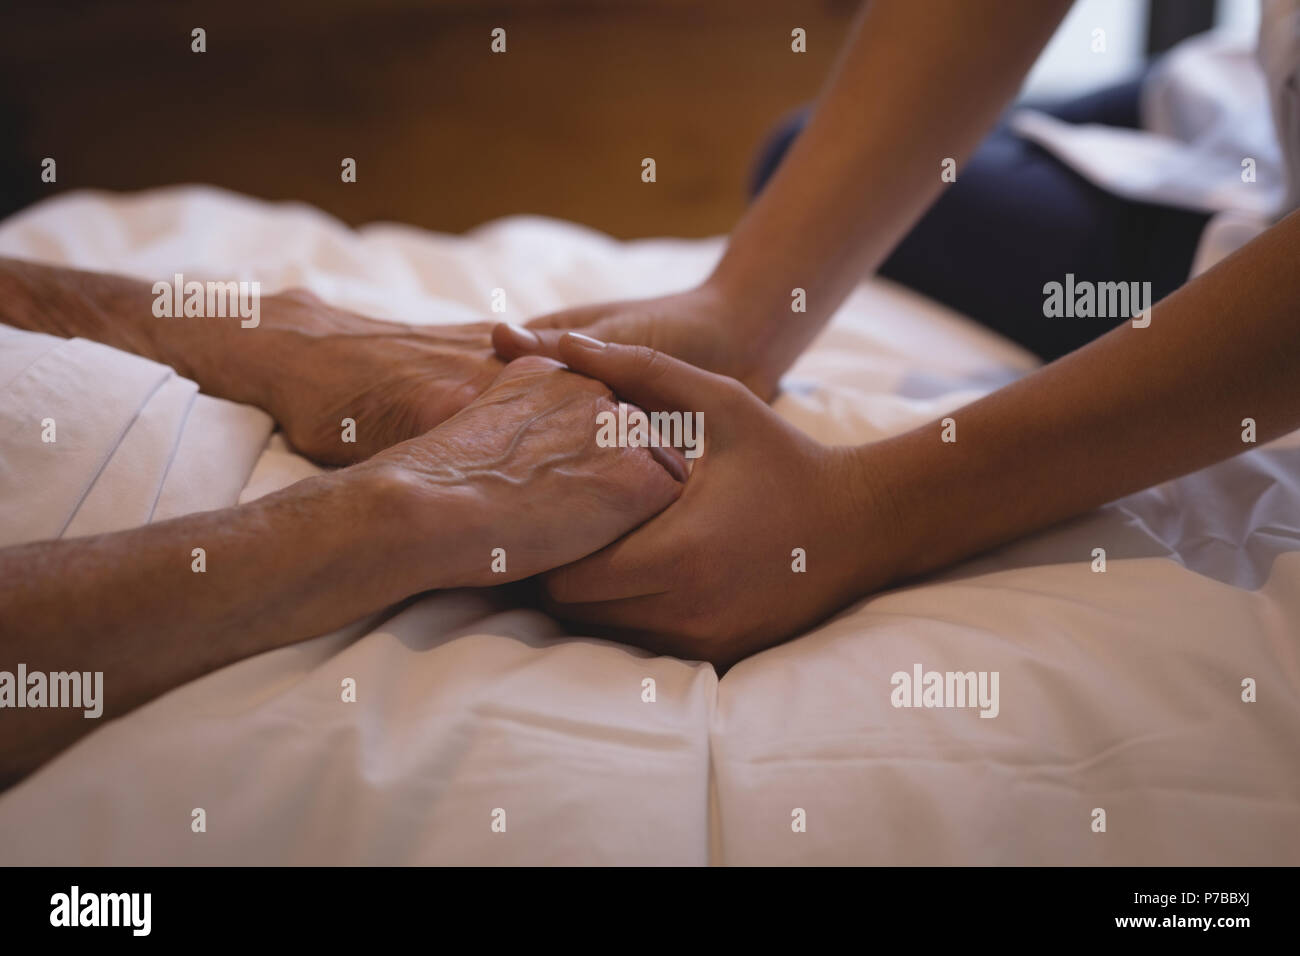 Physiotherapist holding hand of a senior woman - Stock Image